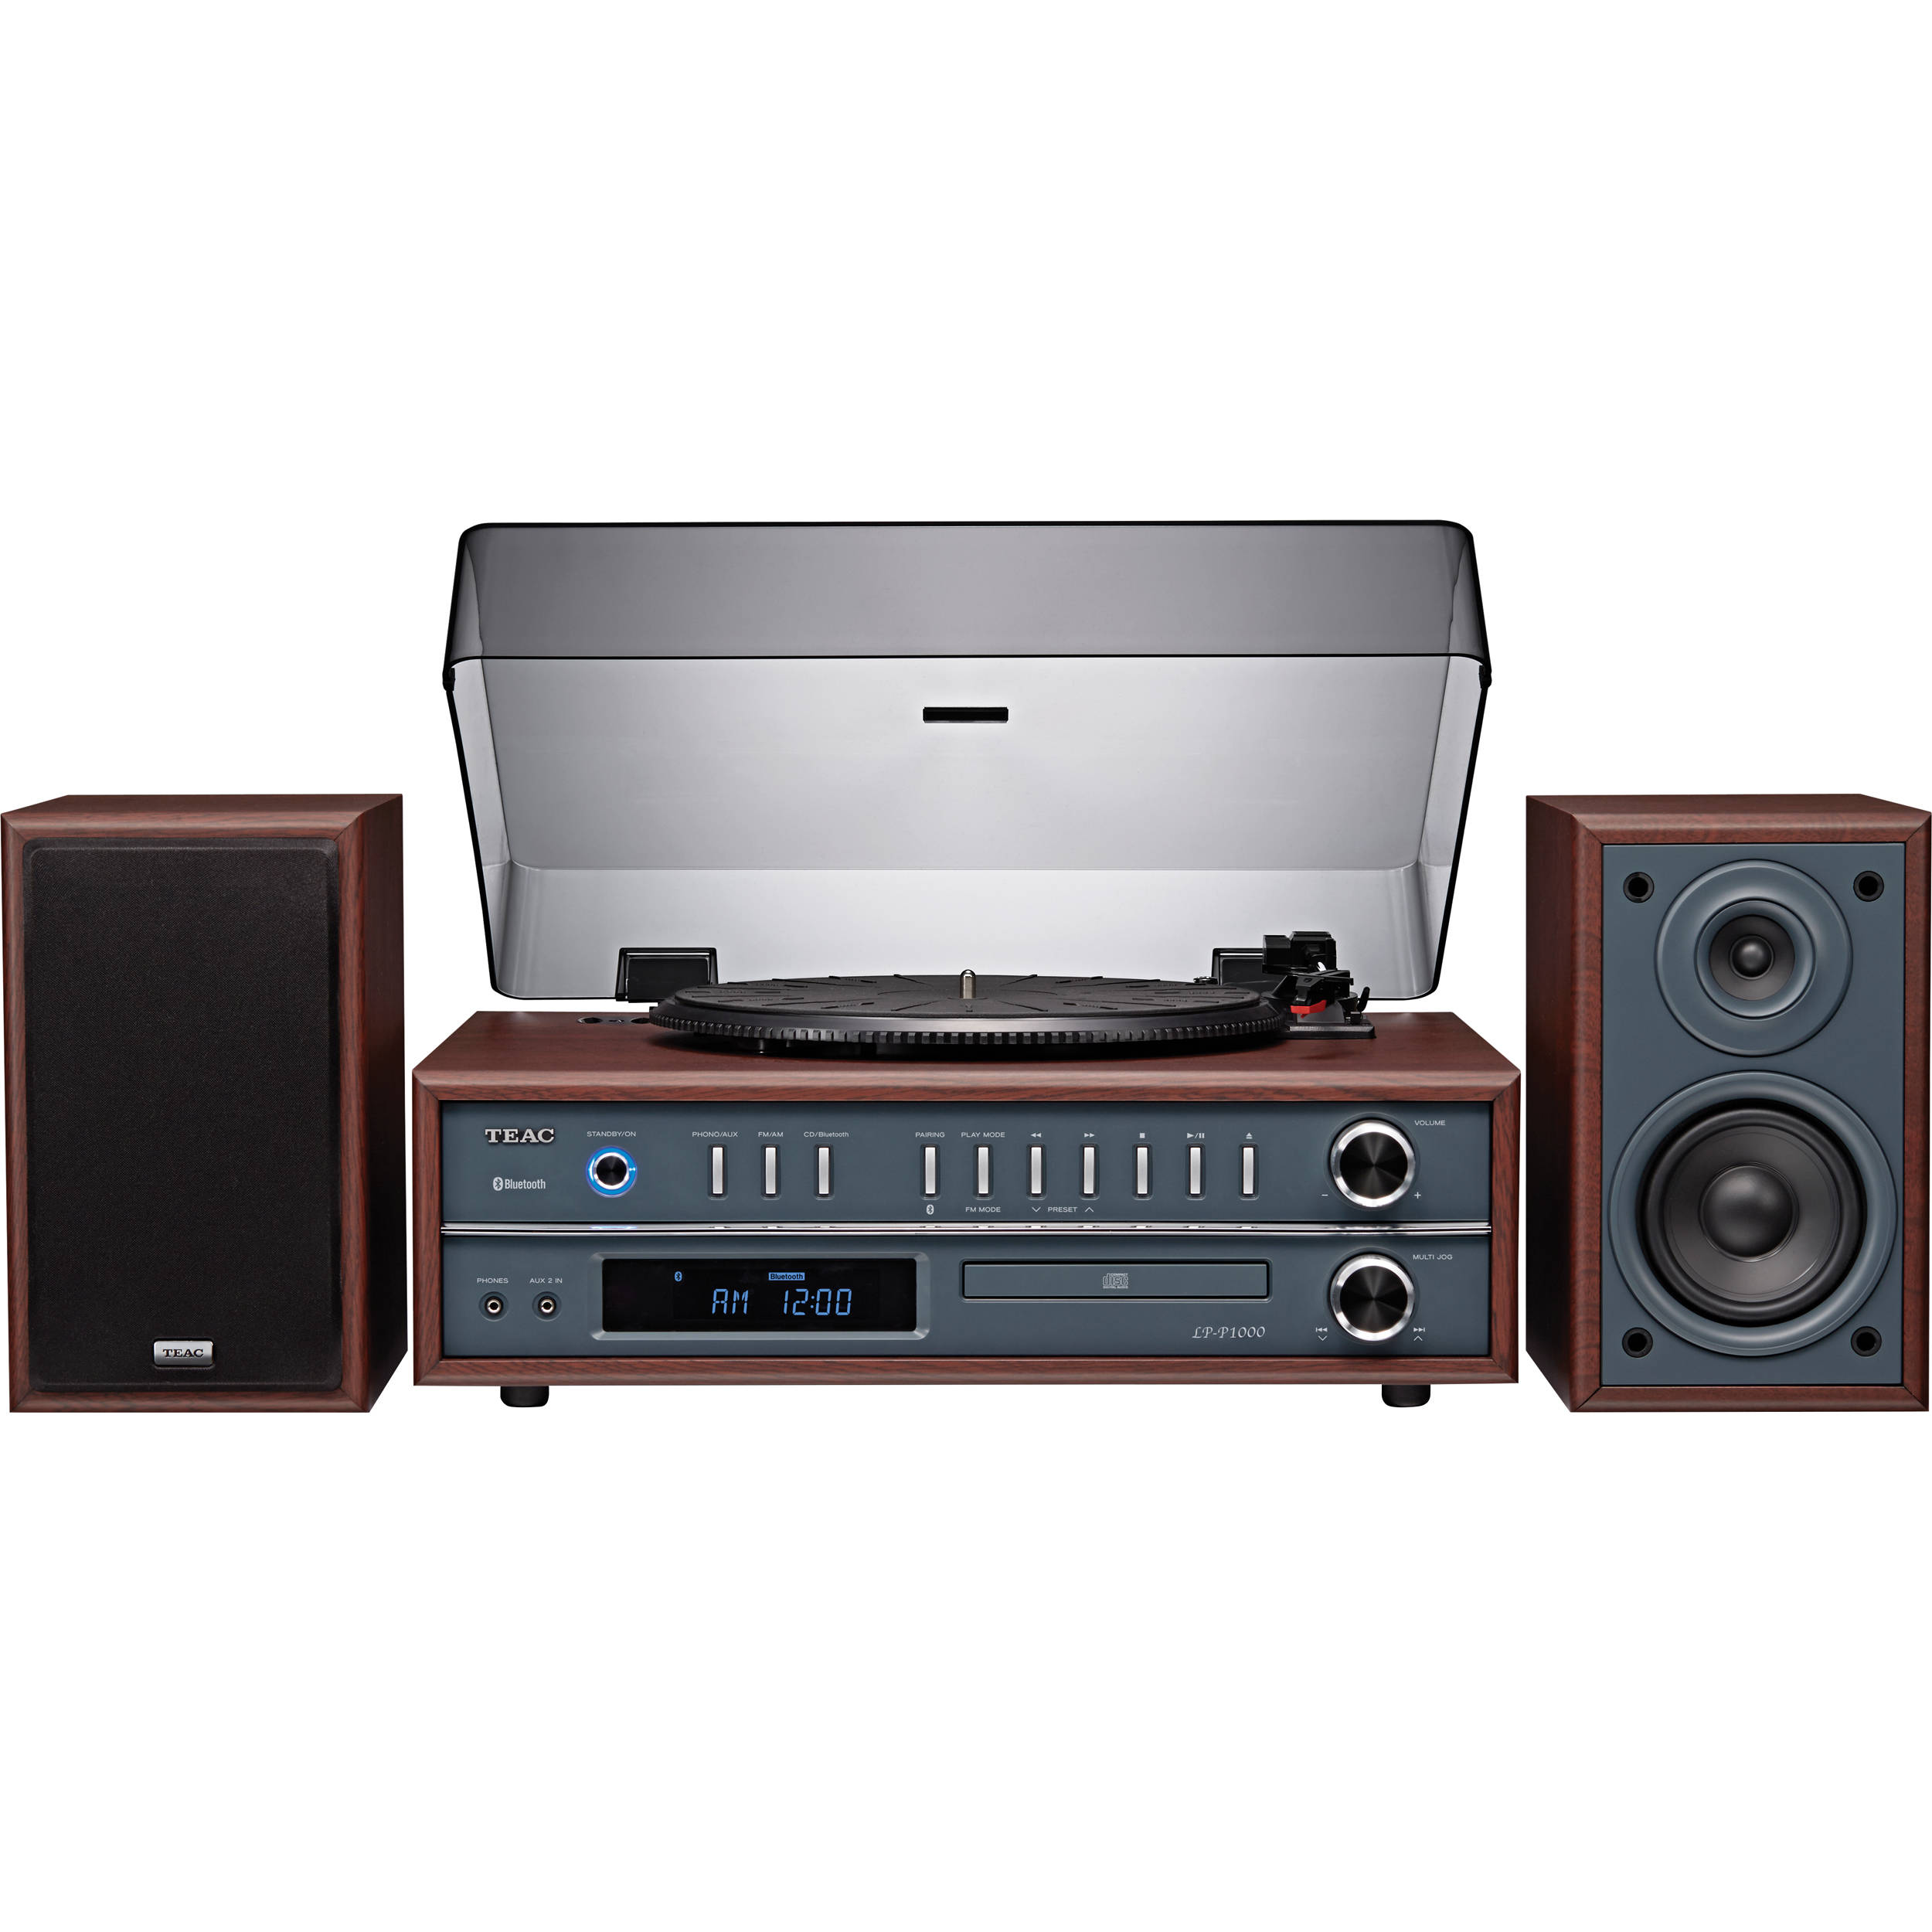 Bose L1  pact Live Sound Pa System further Beats Solo 3 Wireless Headphones 008 besides Teac lp p1000 ch lp p1000 bluetooth cd radio turntable system cherry furthermore TEAC PCD806 CD Player moreover B004PEIAD6. on bose portable cd player with speakers